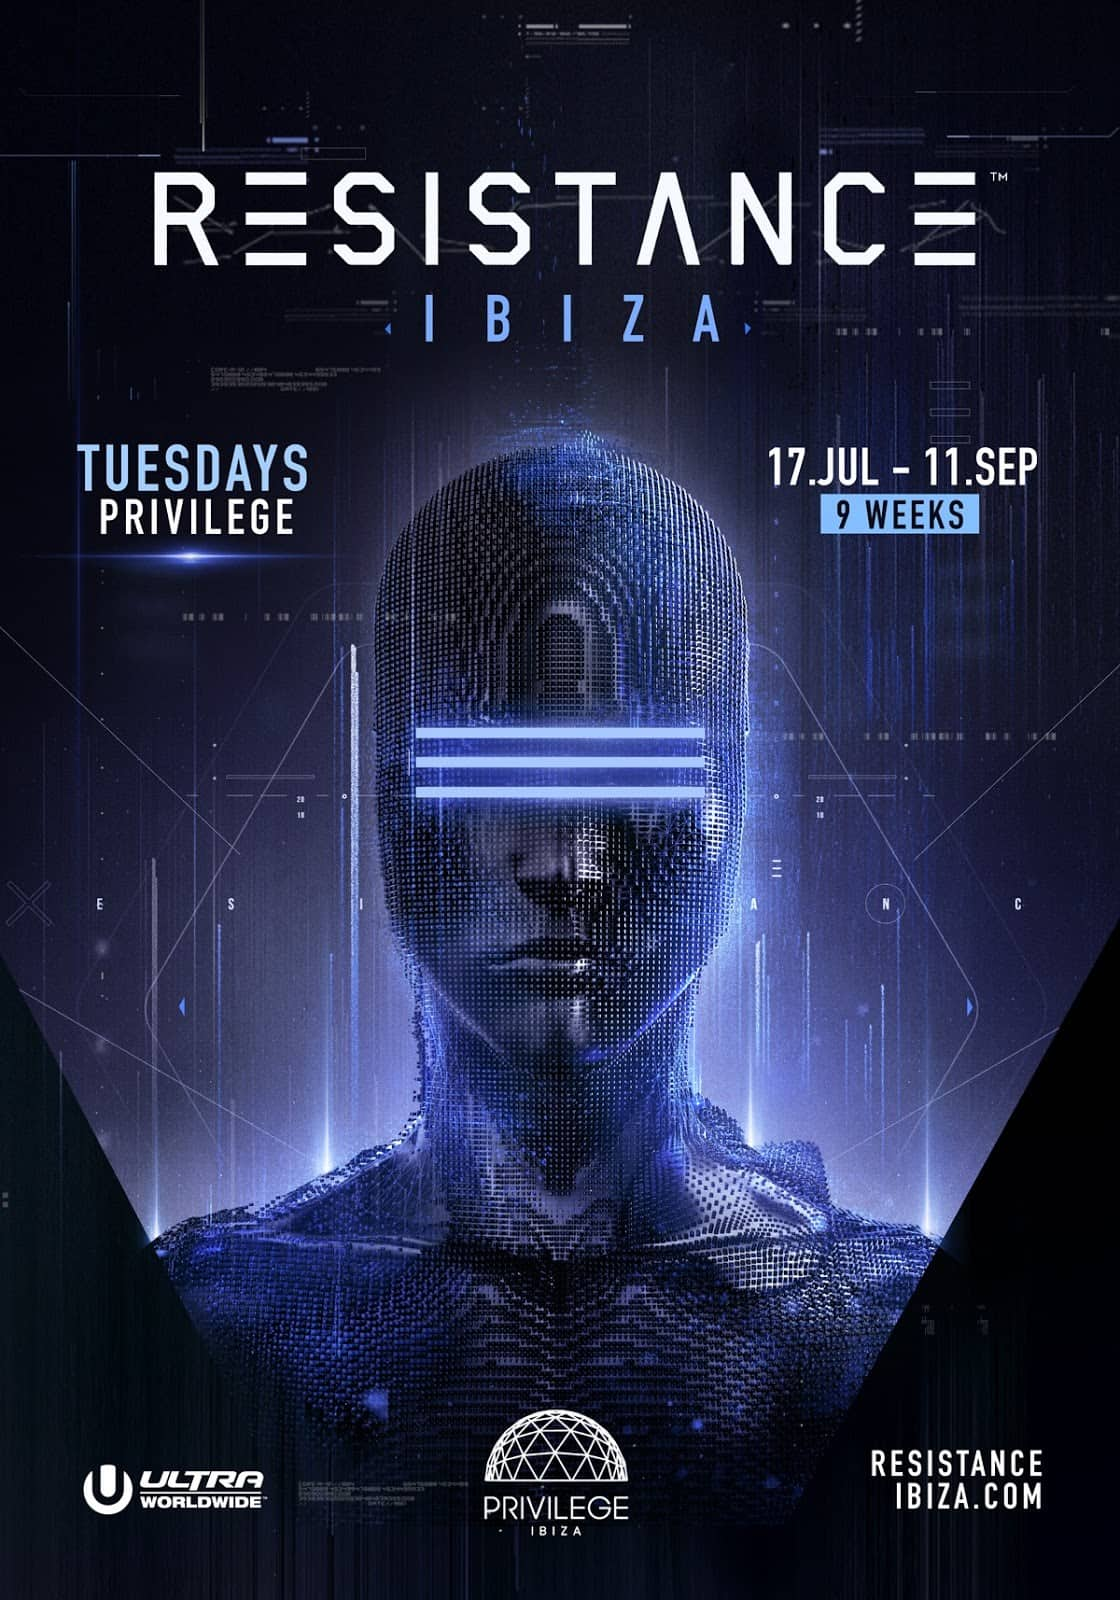 RESISTANCE Ibiza Announces 2018 Dates & Releases 2017 Aftermovie